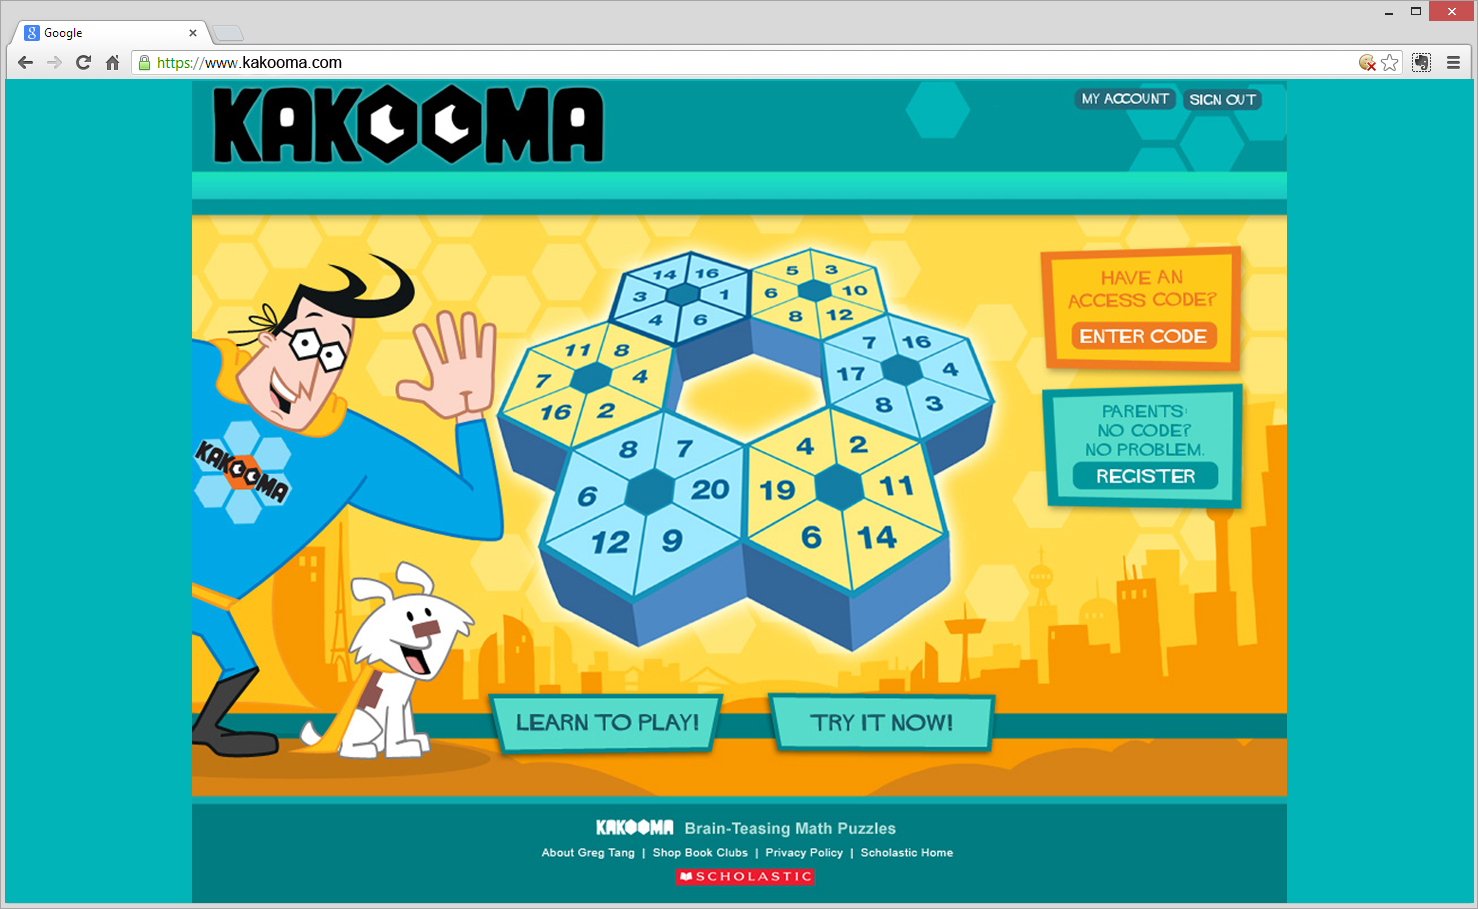 Kakooma Gaming Site For Kids